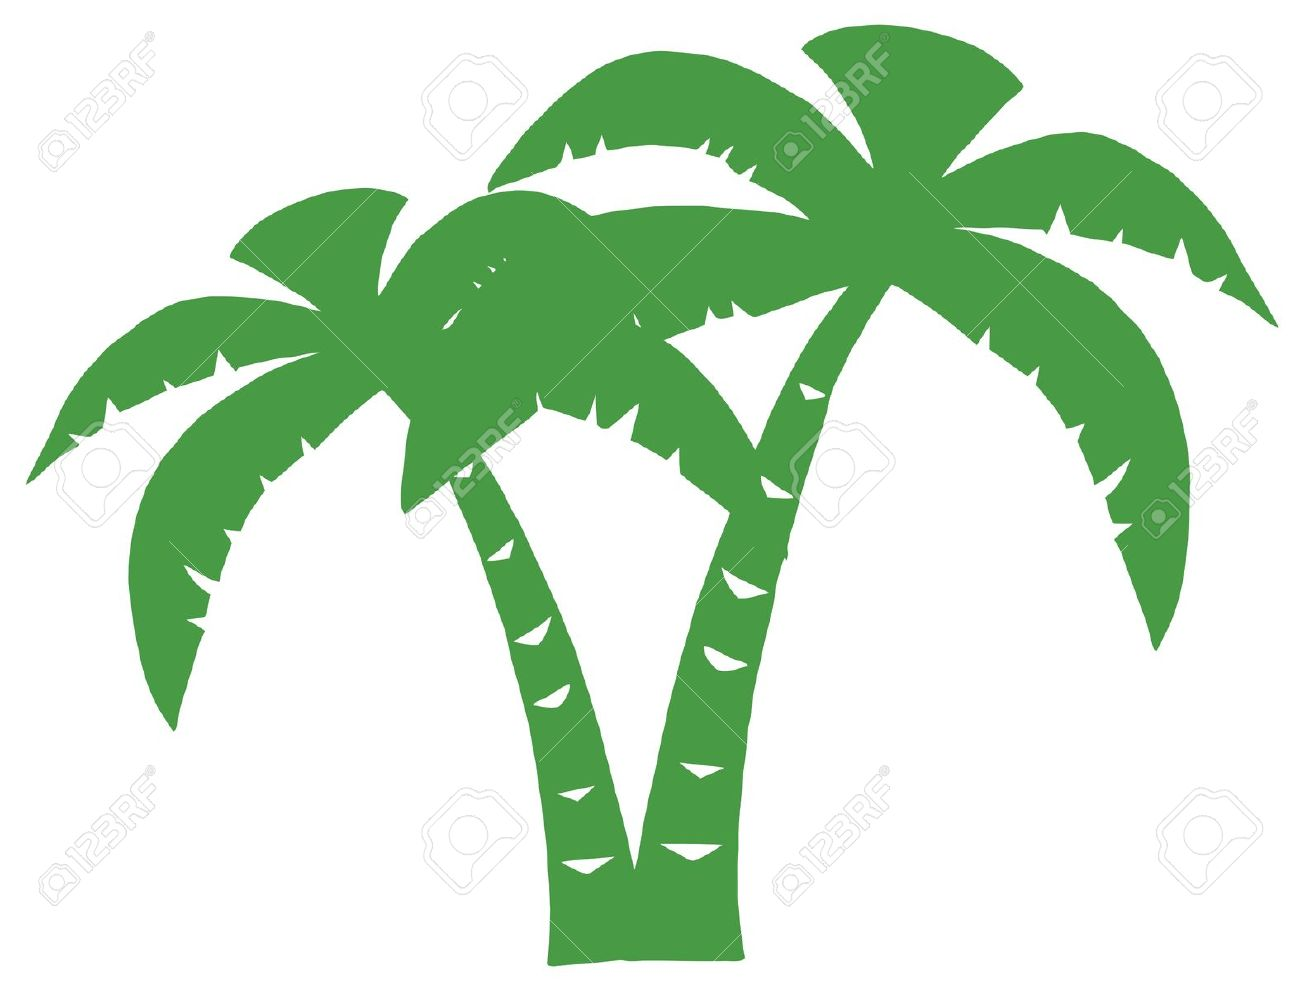 Palm green clipart #14